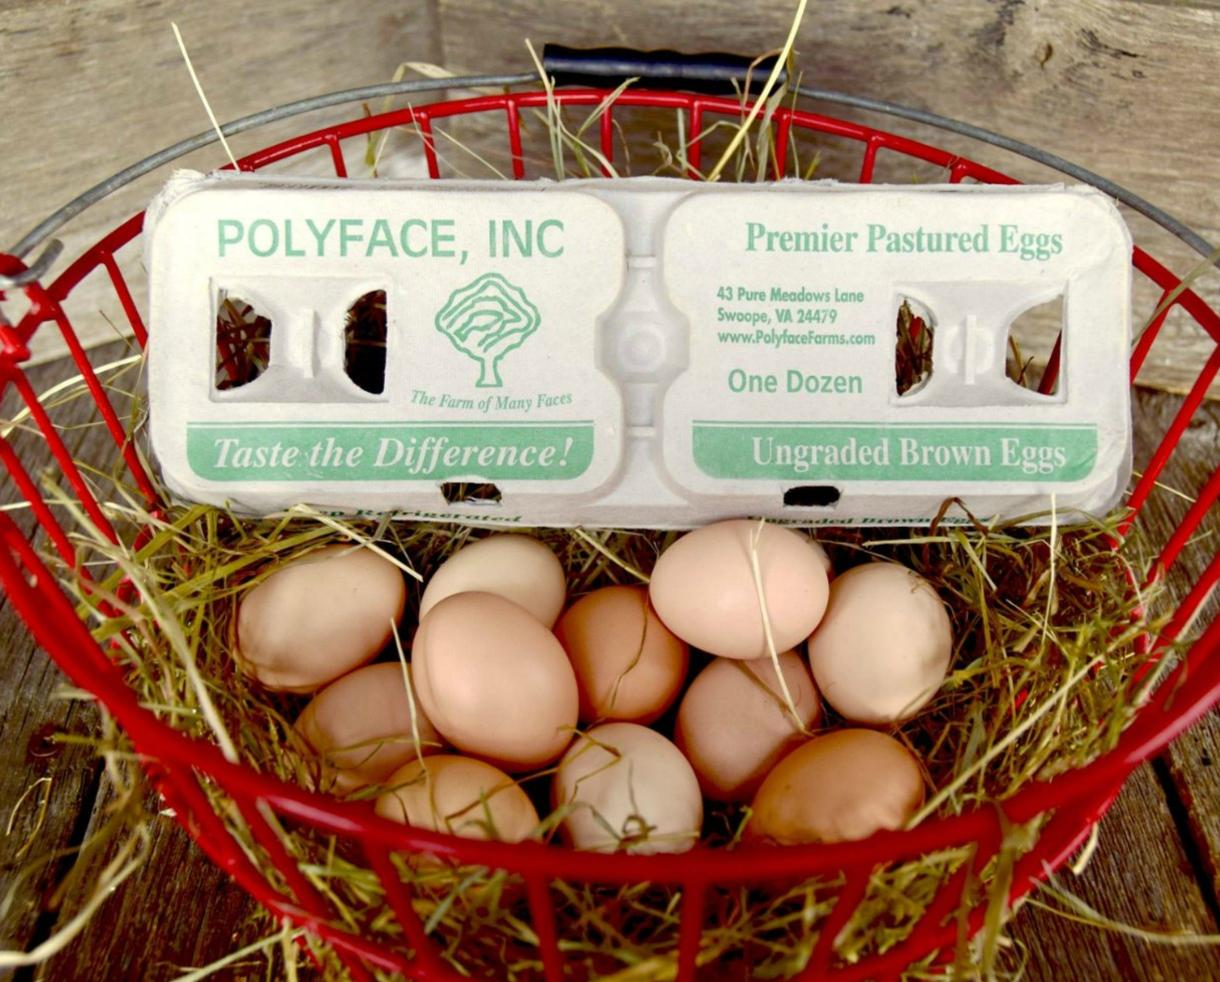 Farm Fresh, Pasture-Raised Meat & Eggs from Polyface Farms Buying Clubs